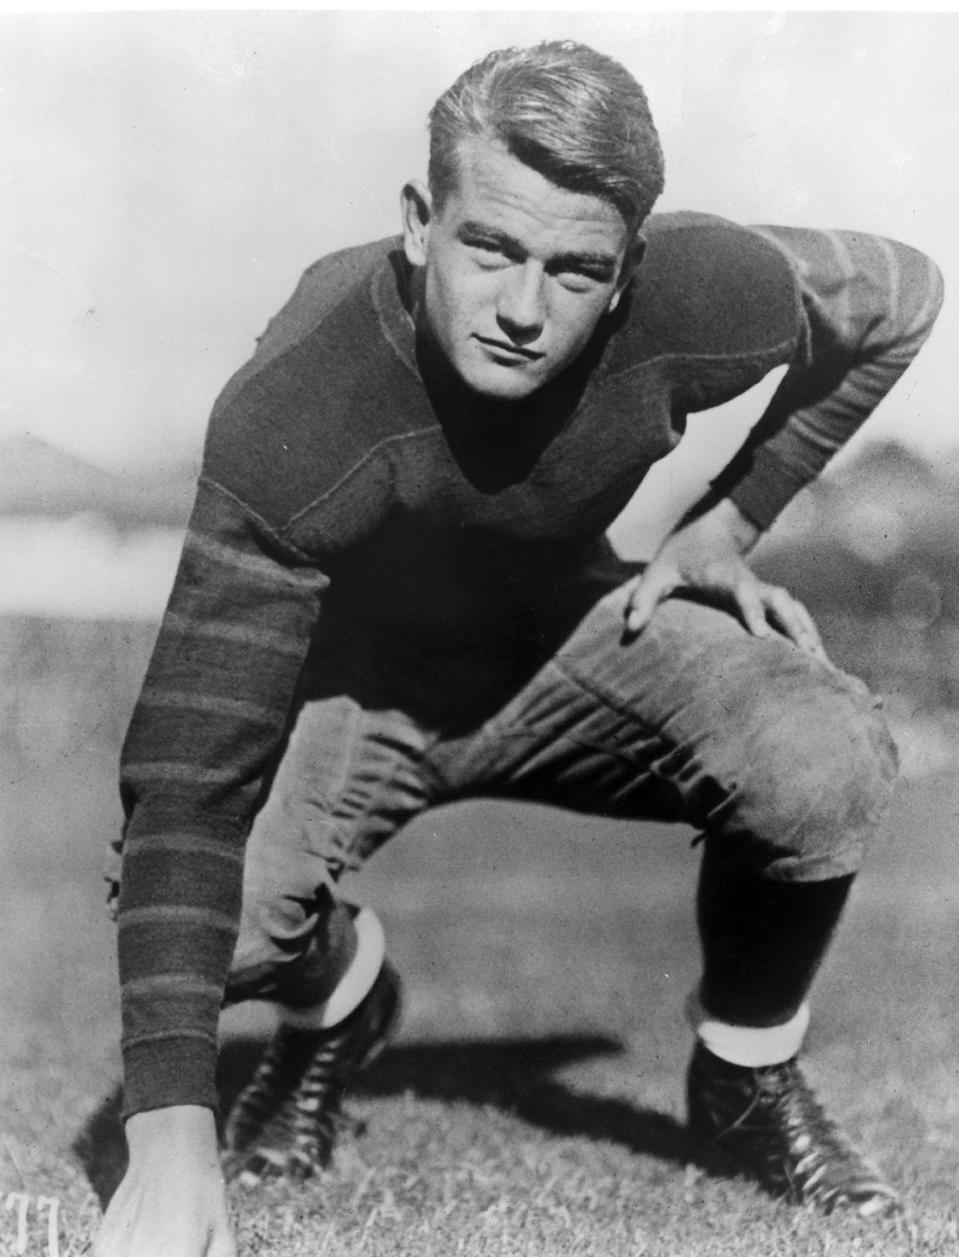 """<p>John Wayne got into the University of Southern California for a <a href=""""https://news.usc.edu/15621/john-wayne-an-american-icon/"""" rel=""""nofollow noopener"""" target=""""_blank"""" data-ylk=""""slk:football scholarship in 1925"""" class=""""link rapid-noclick-resp"""">football scholarship in 1925</a>. Unfortunately, the future Western movie star broke his collarbone surfing and lost his scholarship at the beginning of his junior year. </p>"""